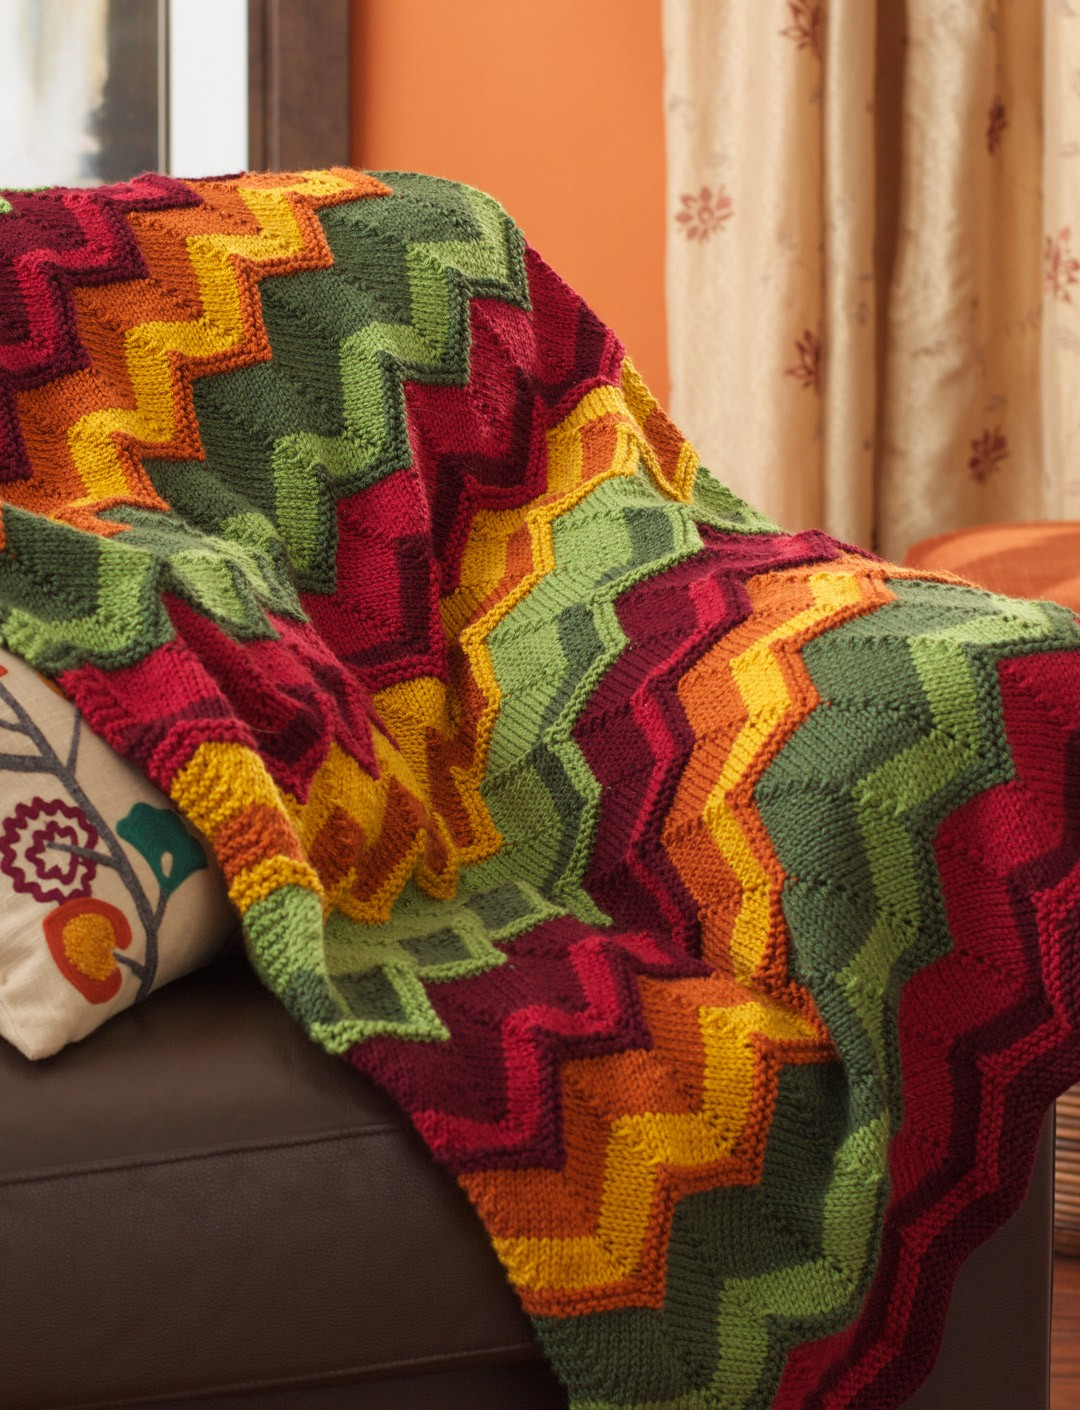 Chevron Afghan Pattern Knit : Patons Spicy Chevron Blanket, Knit Pattern Yarnspirations